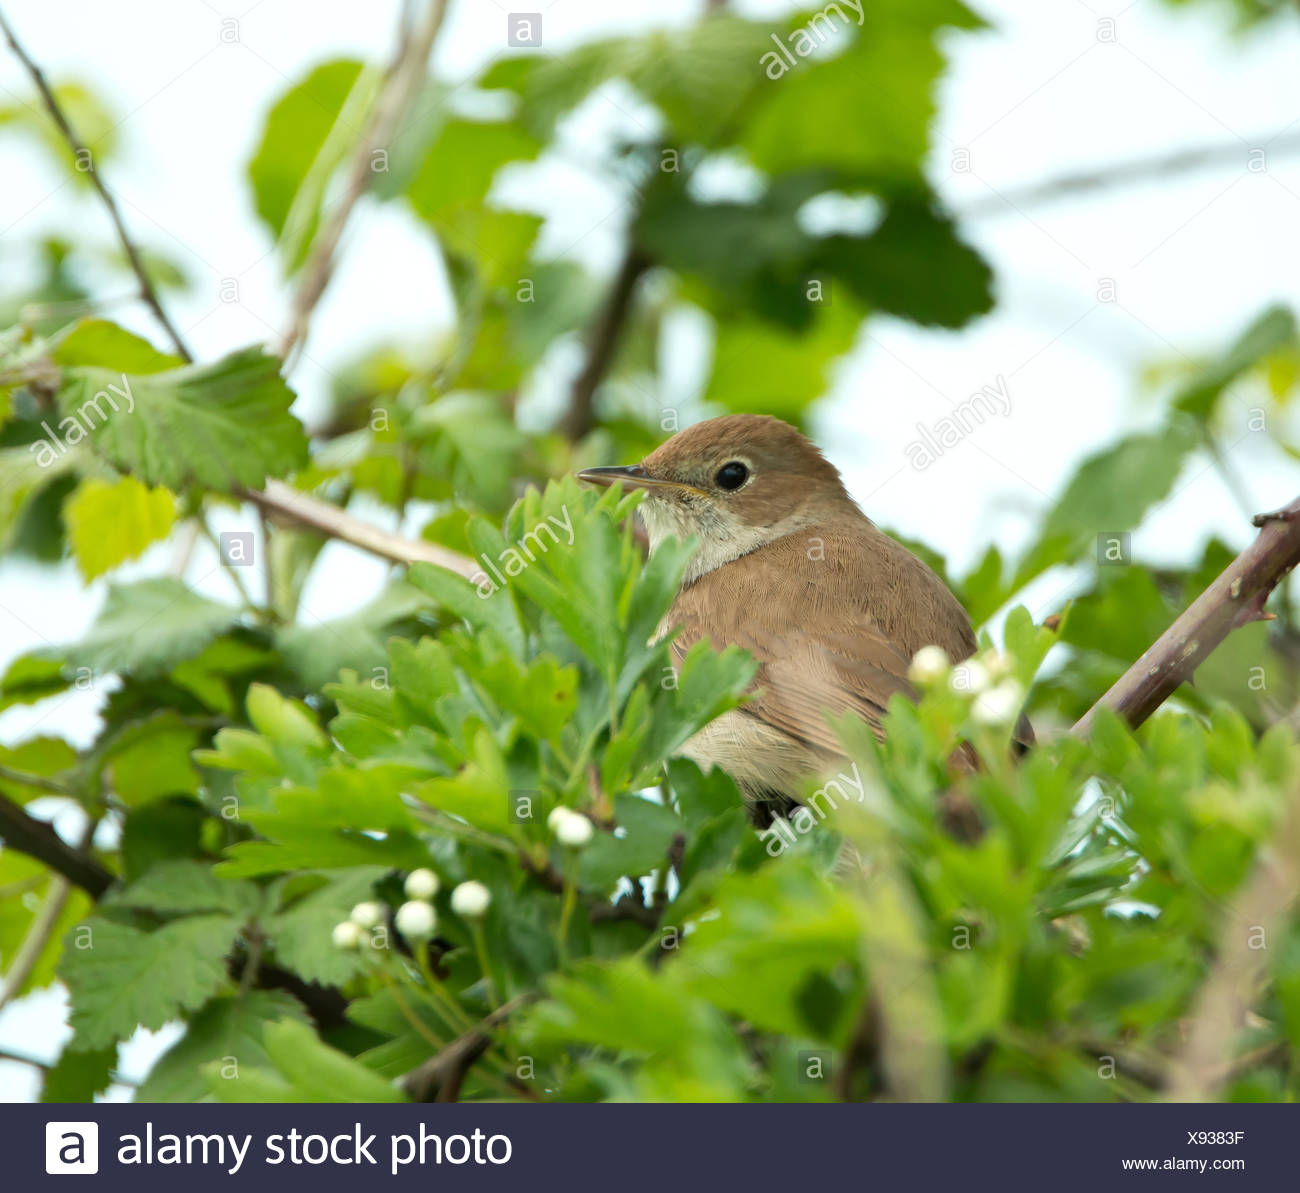 Nightingale partly concealed in tree - Stock Image